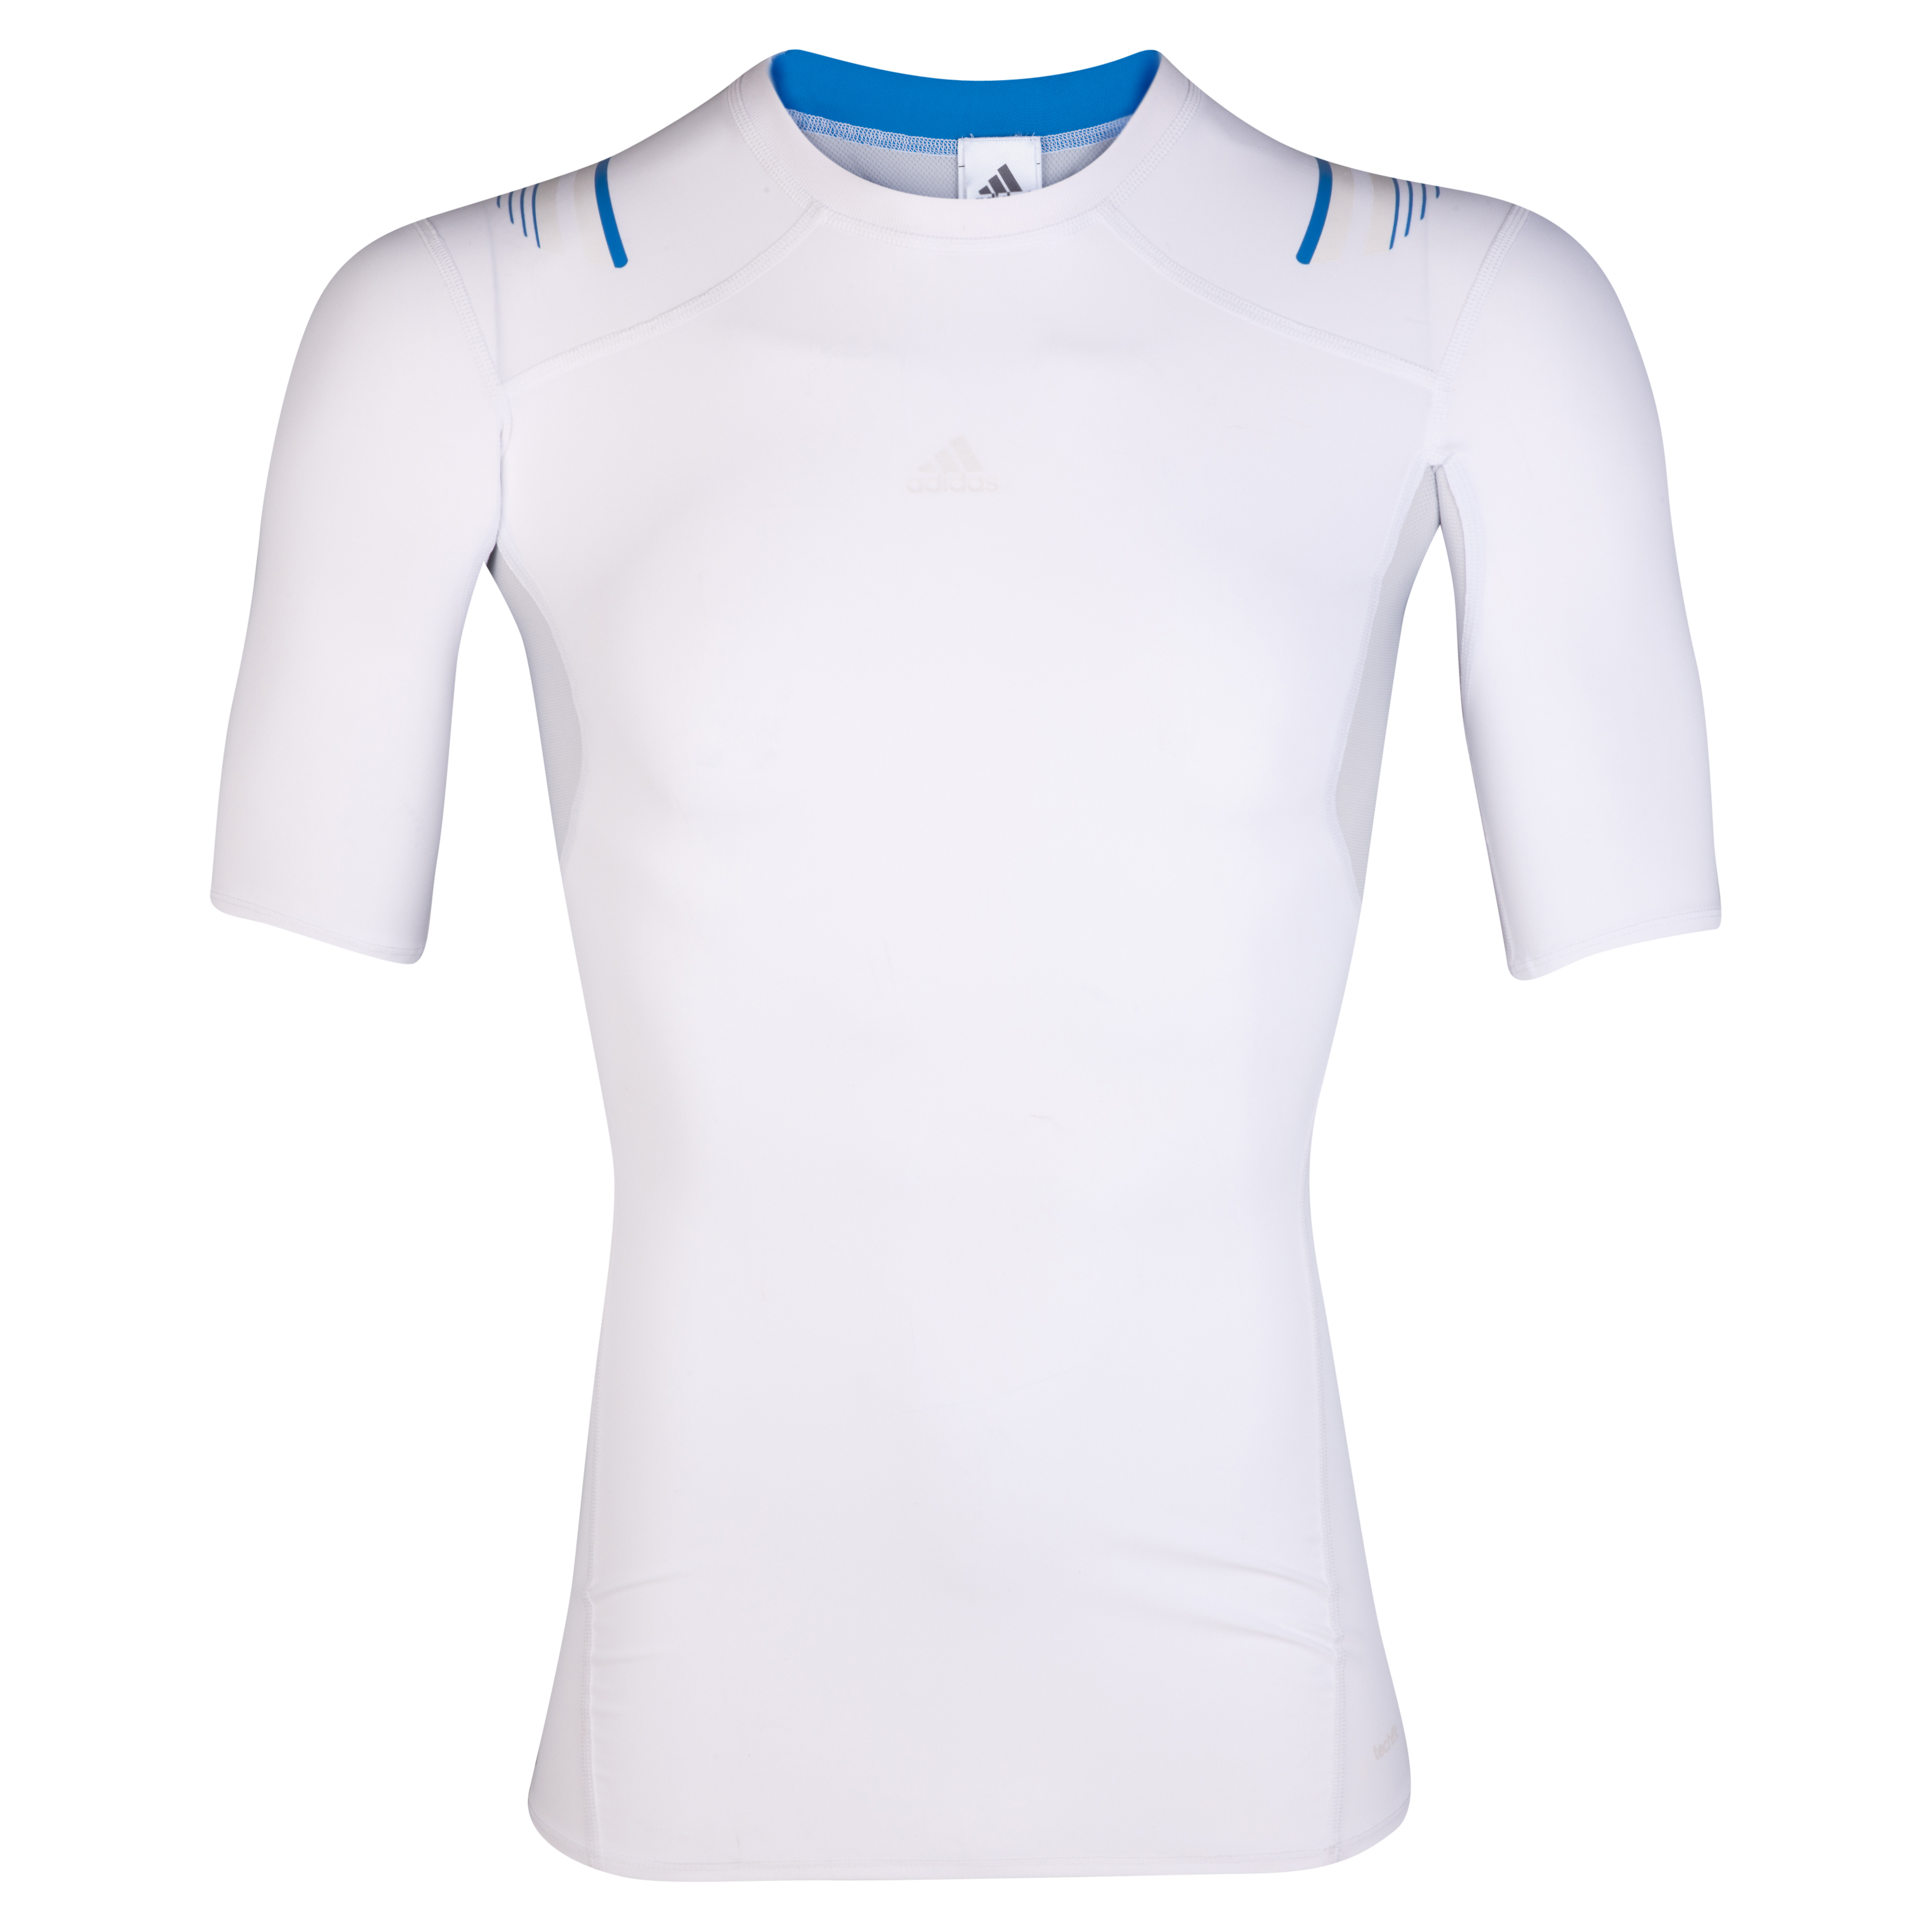 Camiseta interior TechFit PowerWeb adidas - Manga corta - Blanco